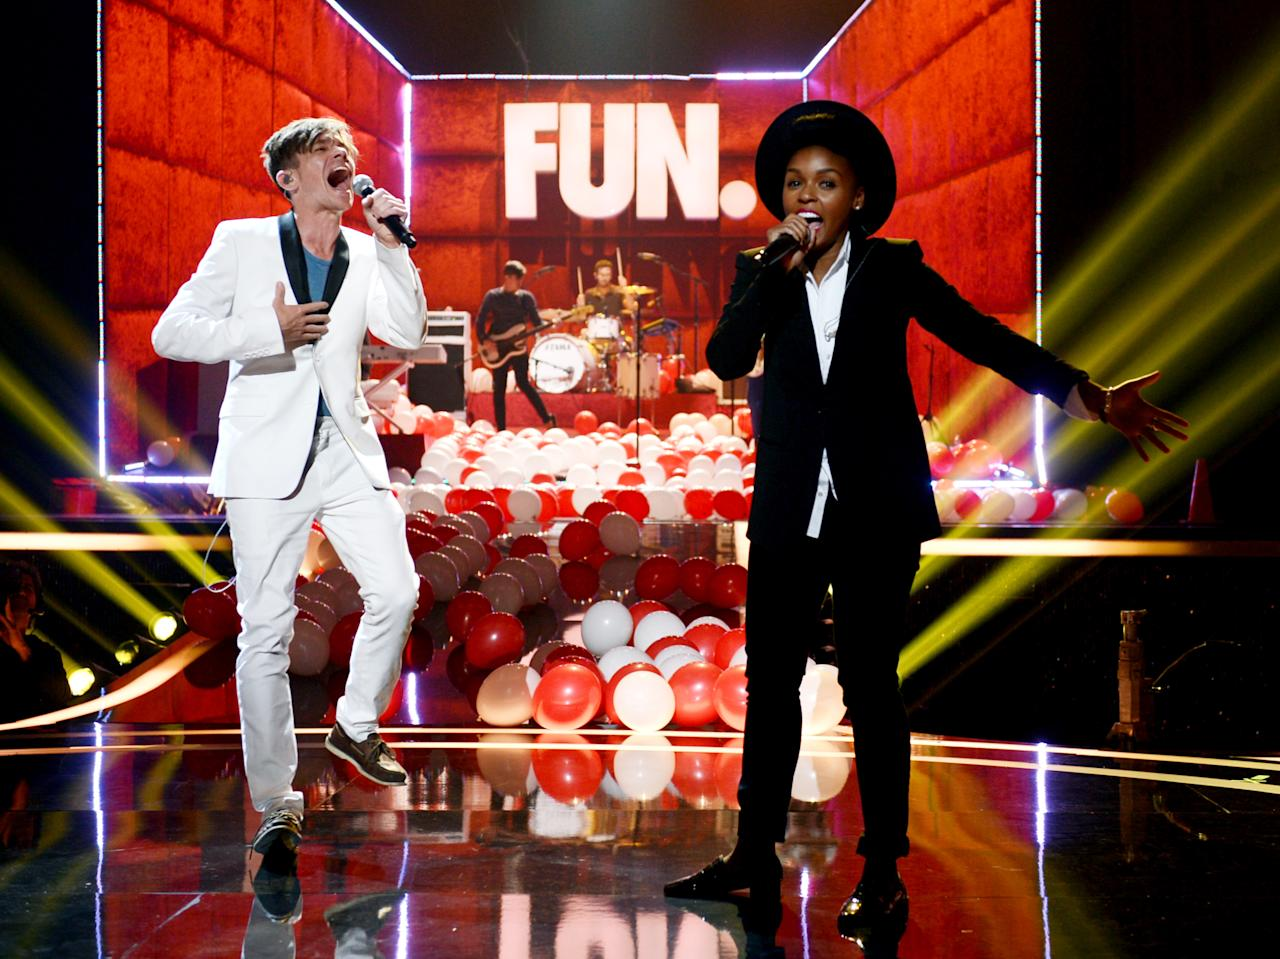 """""""We Are Young"""" - Fun. Featuring Janelle Monáe"""